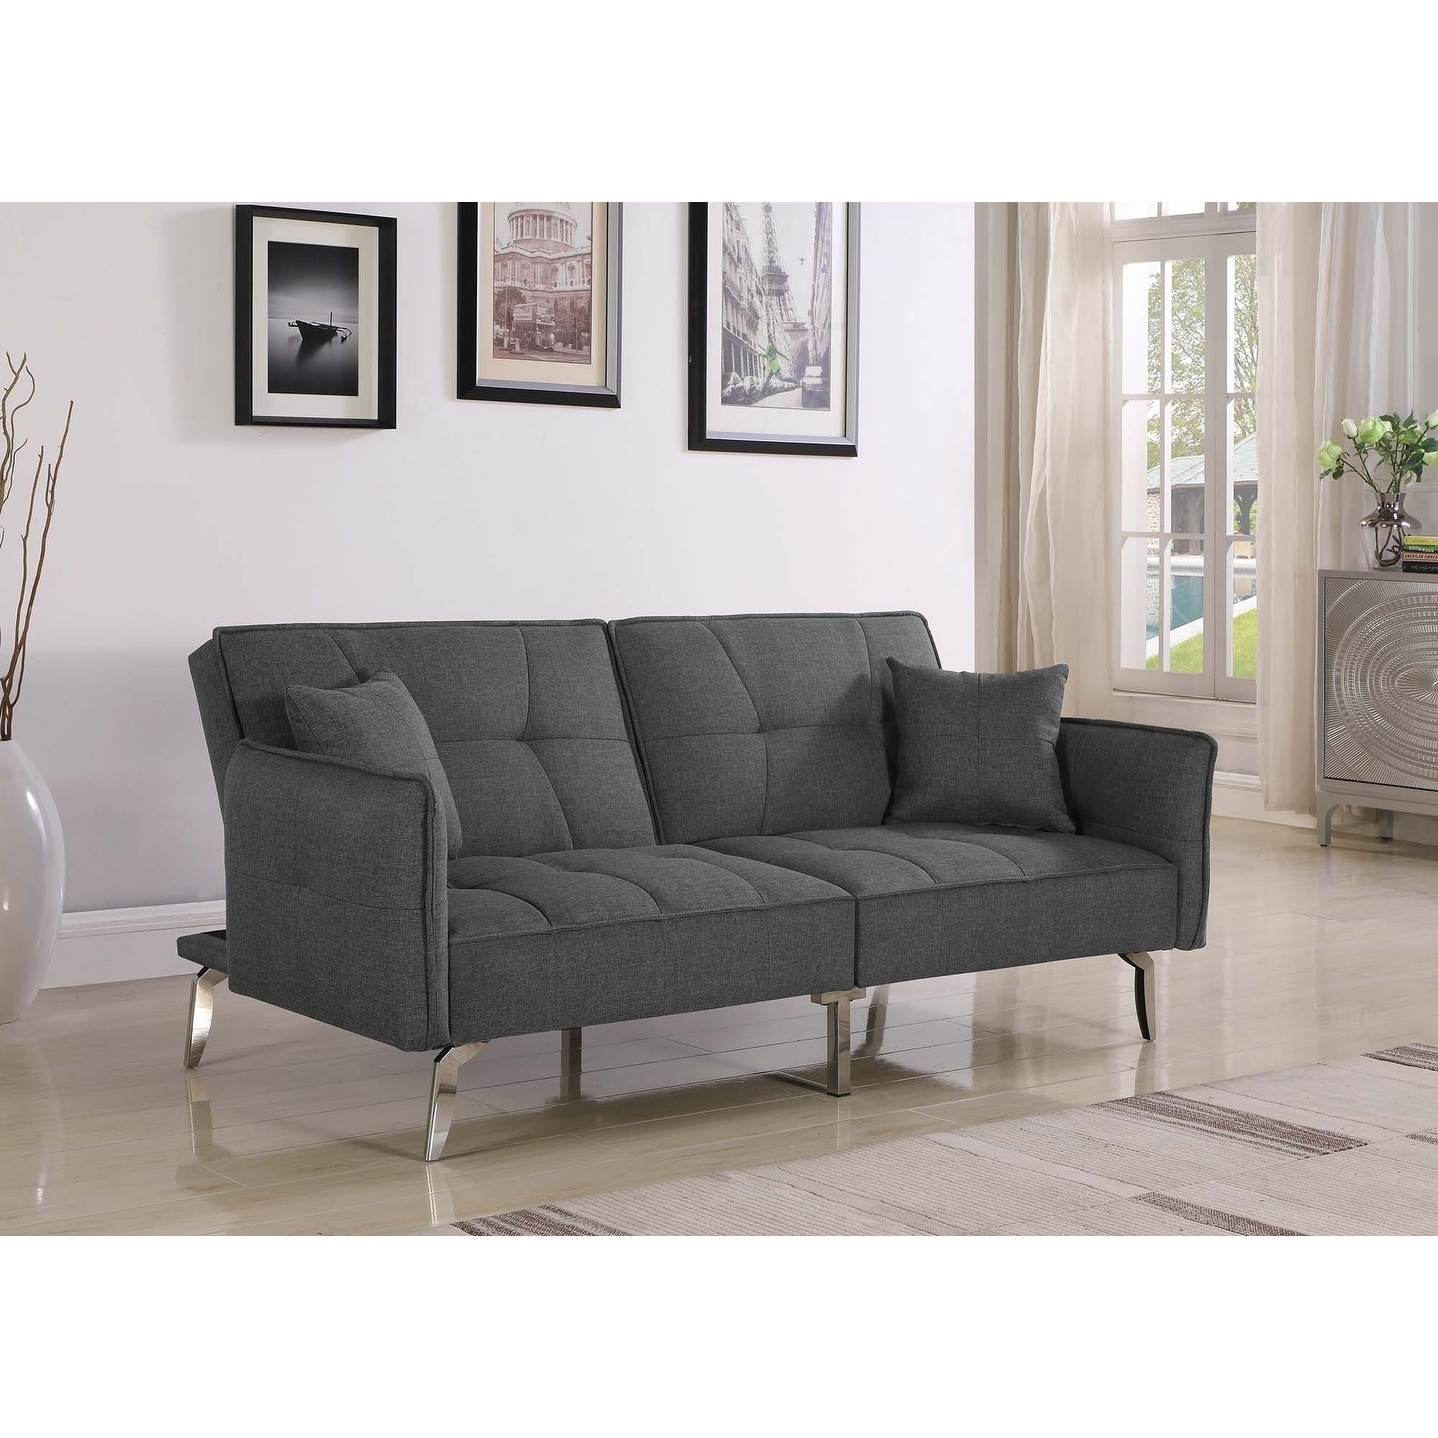 Strange Grey Upholstered Tufted Sofa Bed Gamerscity Chair Design For Home Gamerscityorg